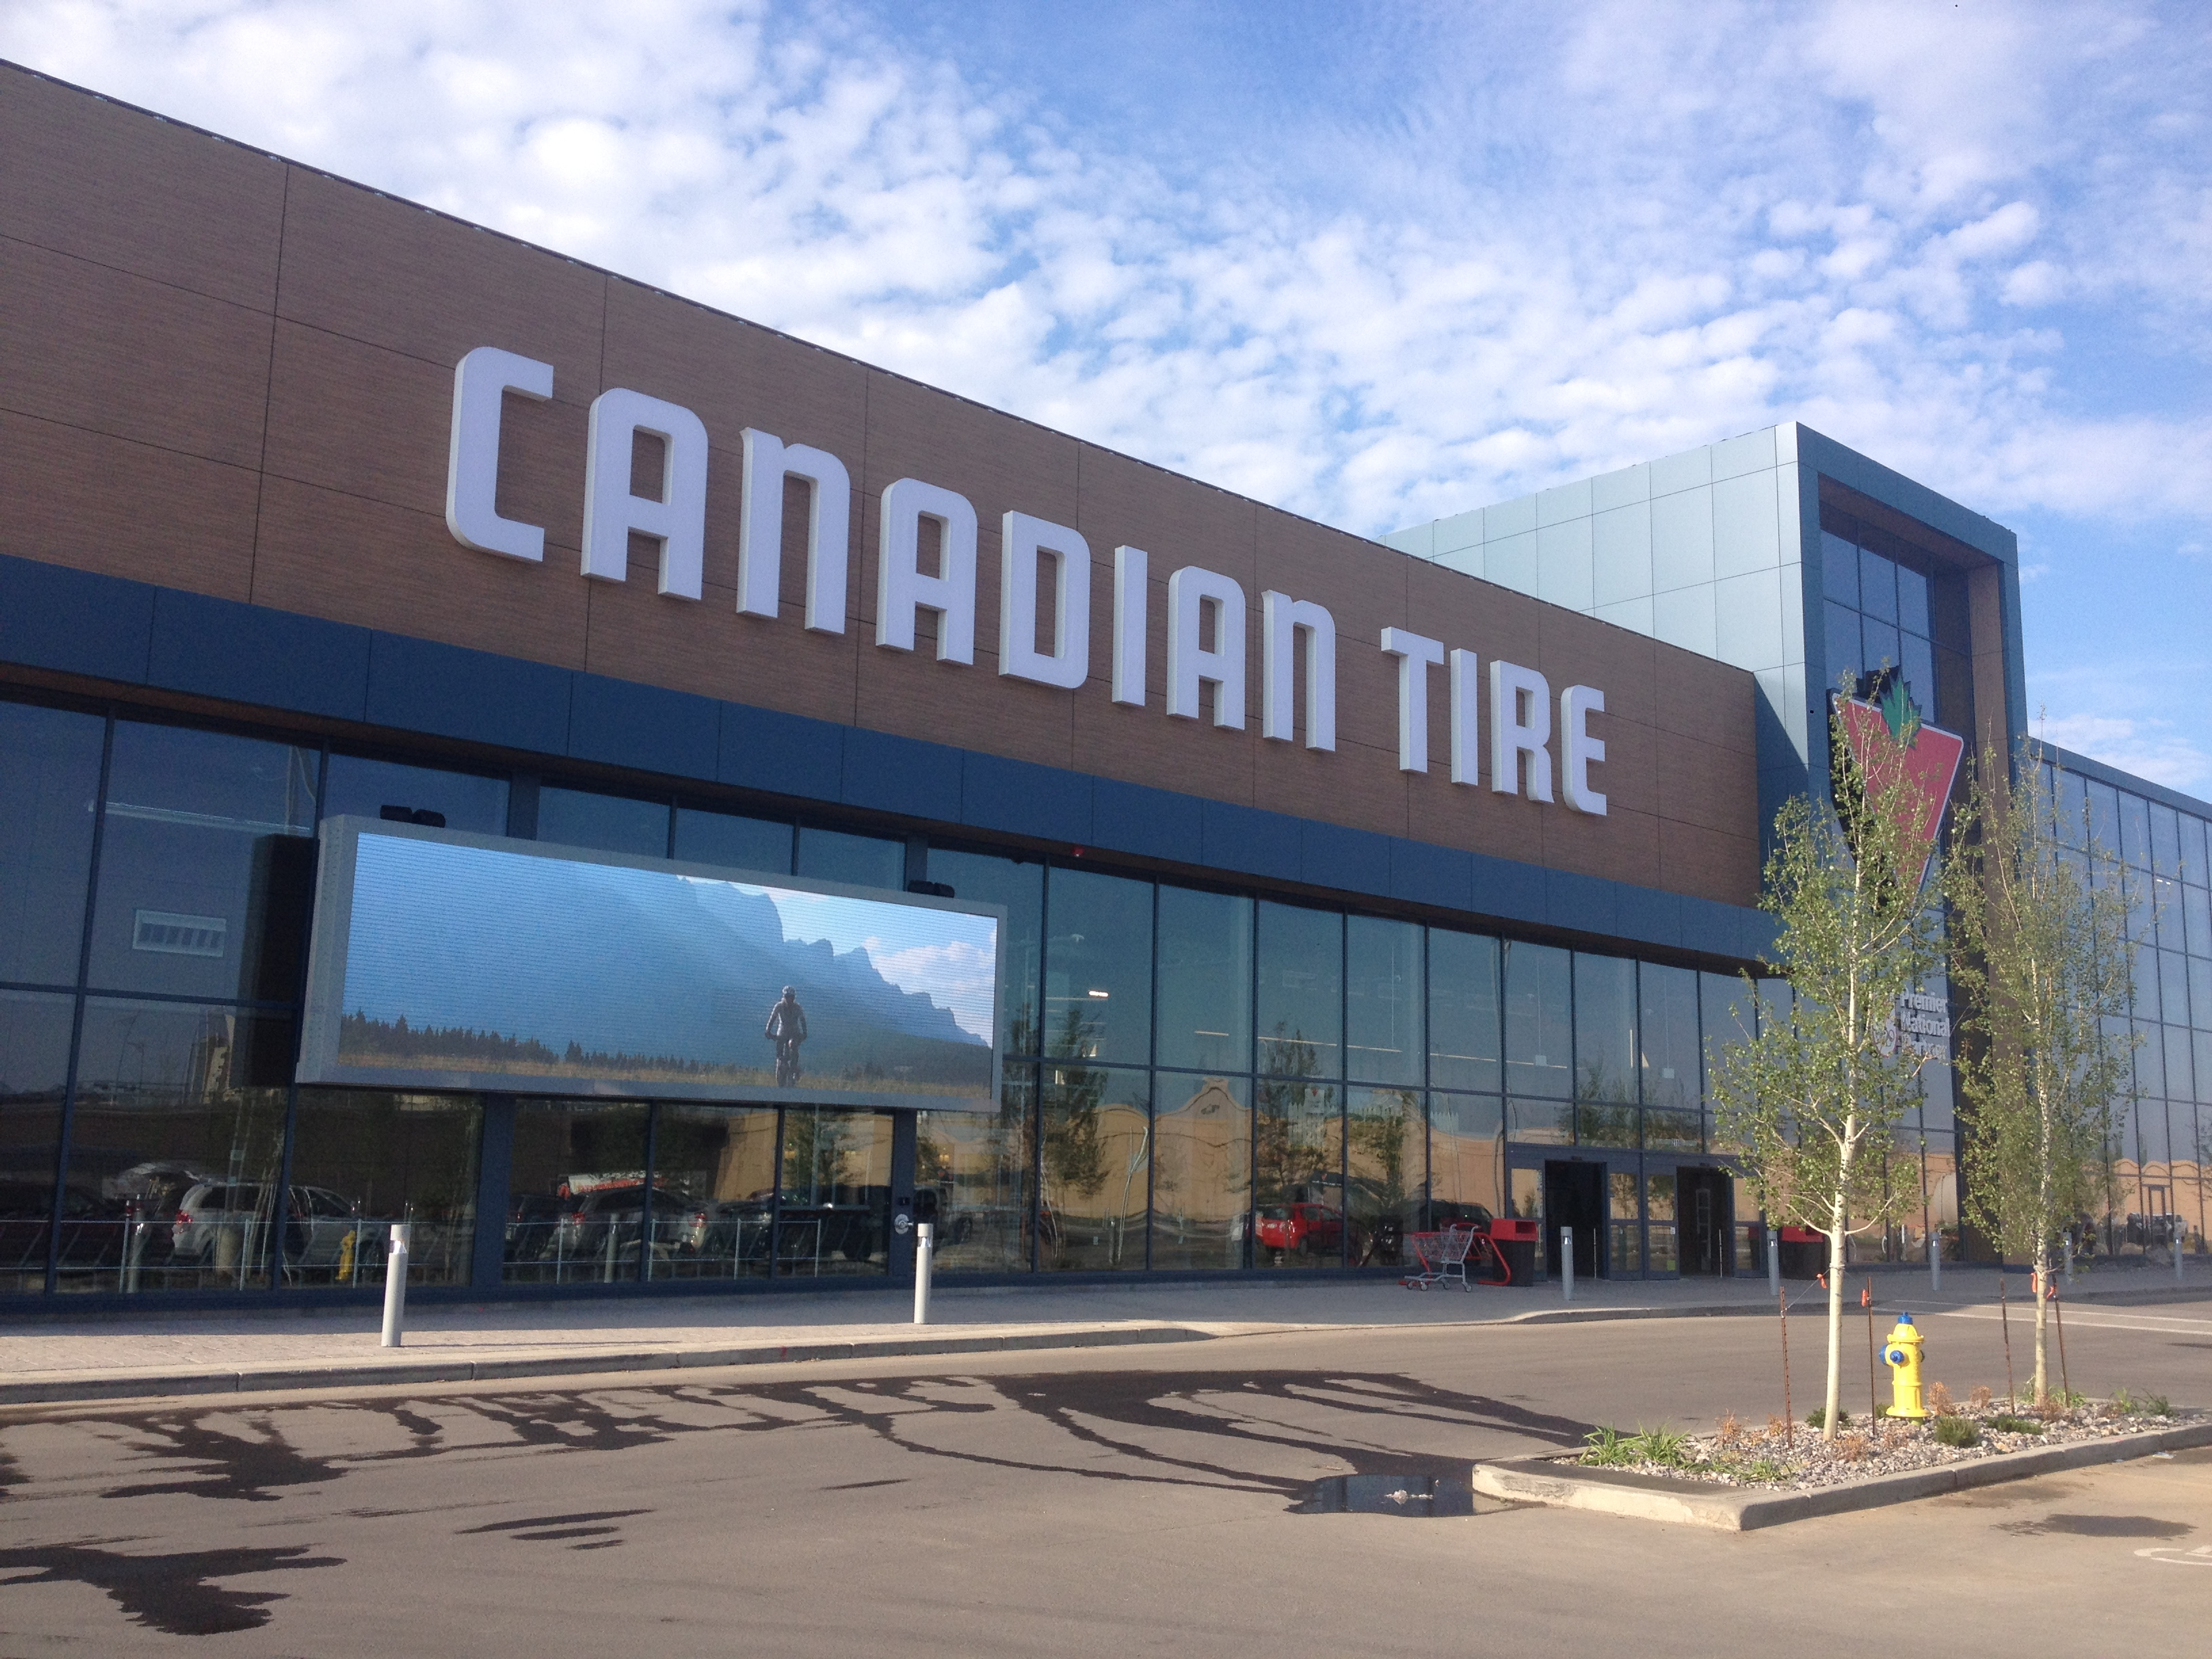 Upad5 Canadian Tire Center, Canada,2015